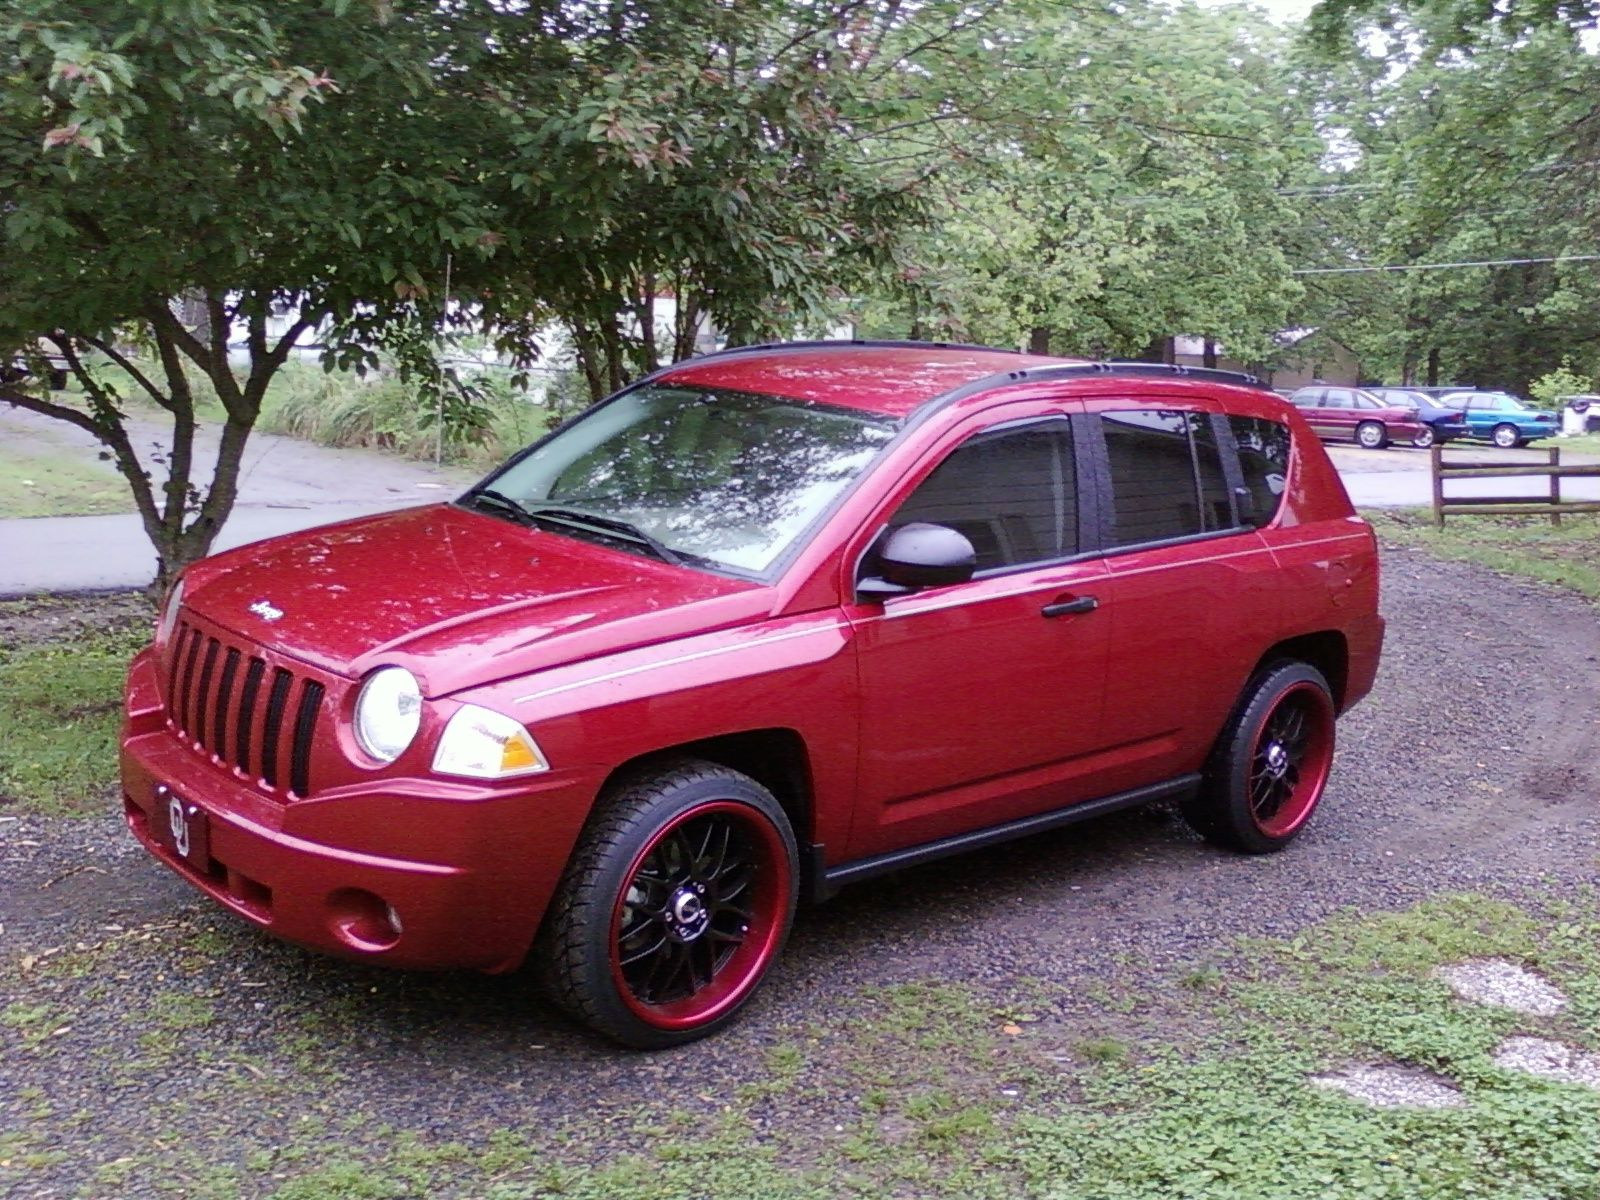 2007 jeep compass modifications modification of cars pinterest 2007 jeep compass jeep. Black Bedroom Furniture Sets. Home Design Ideas